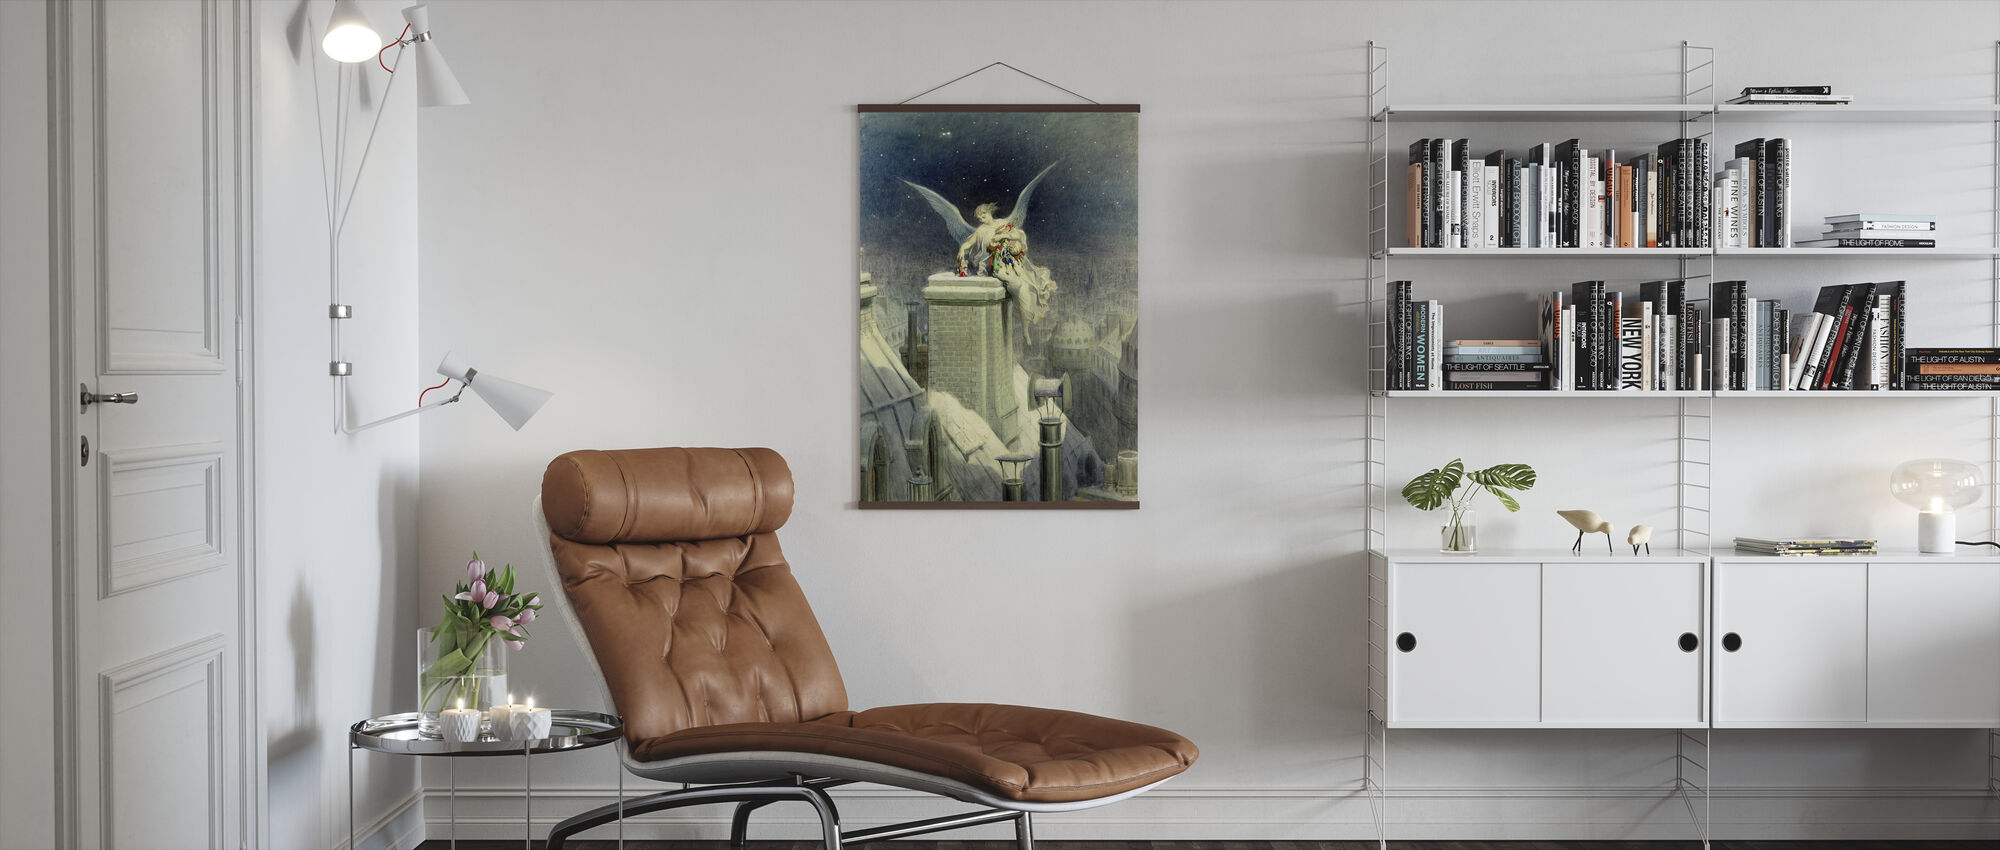 Kerstave Dore - Gustave - Poster - Woonkamer